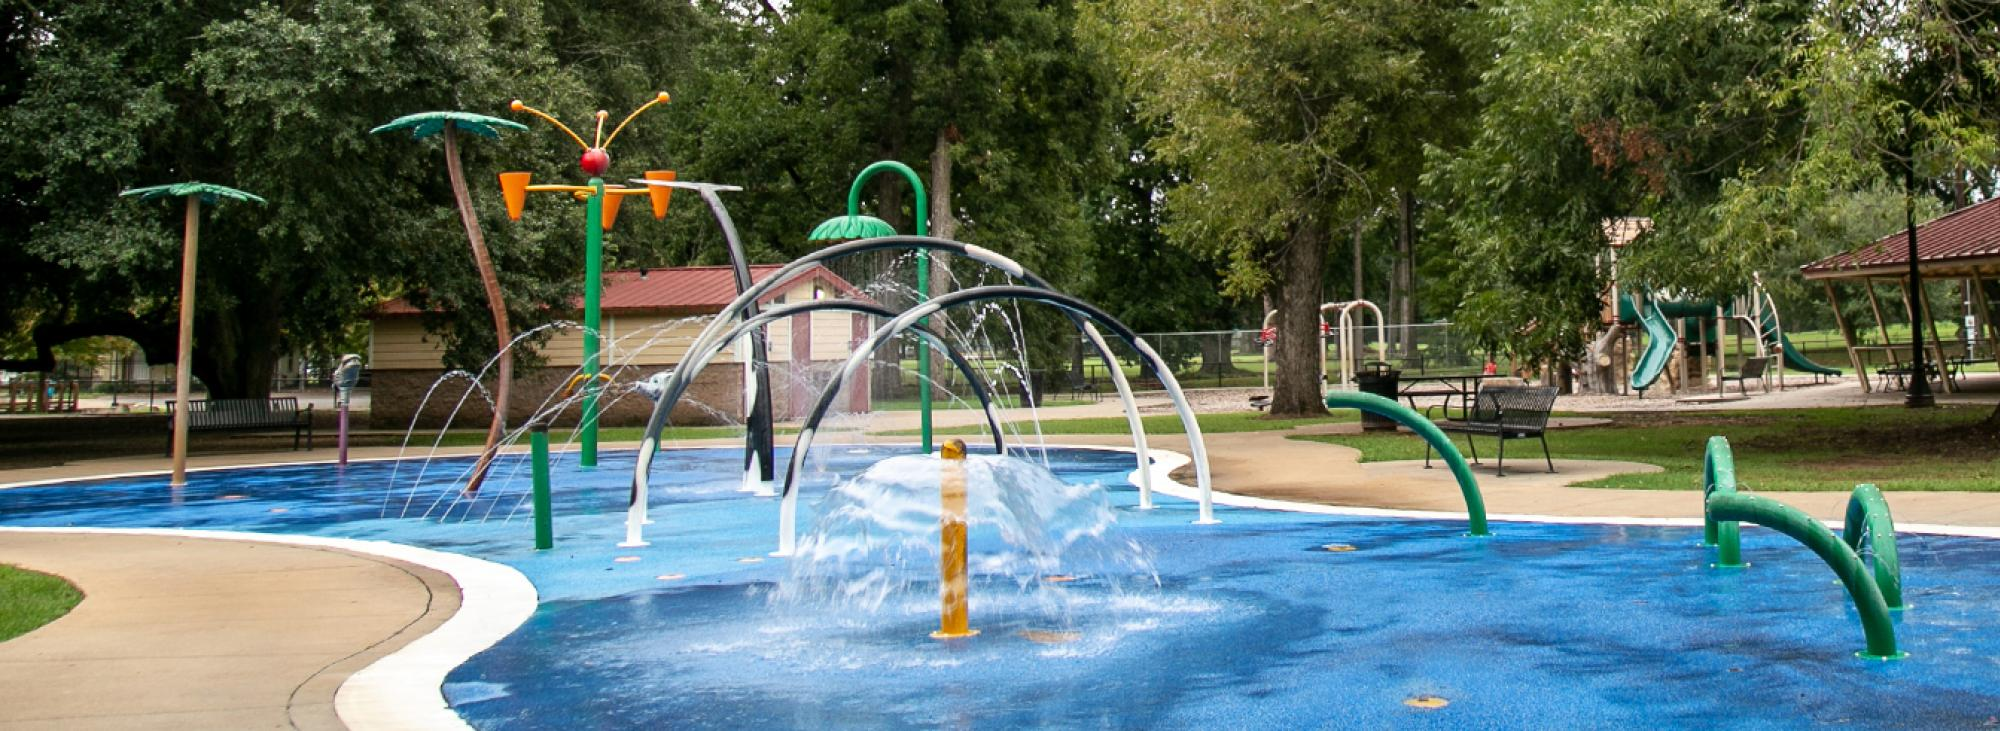 City Park playground Splash Pad in Alexandria la